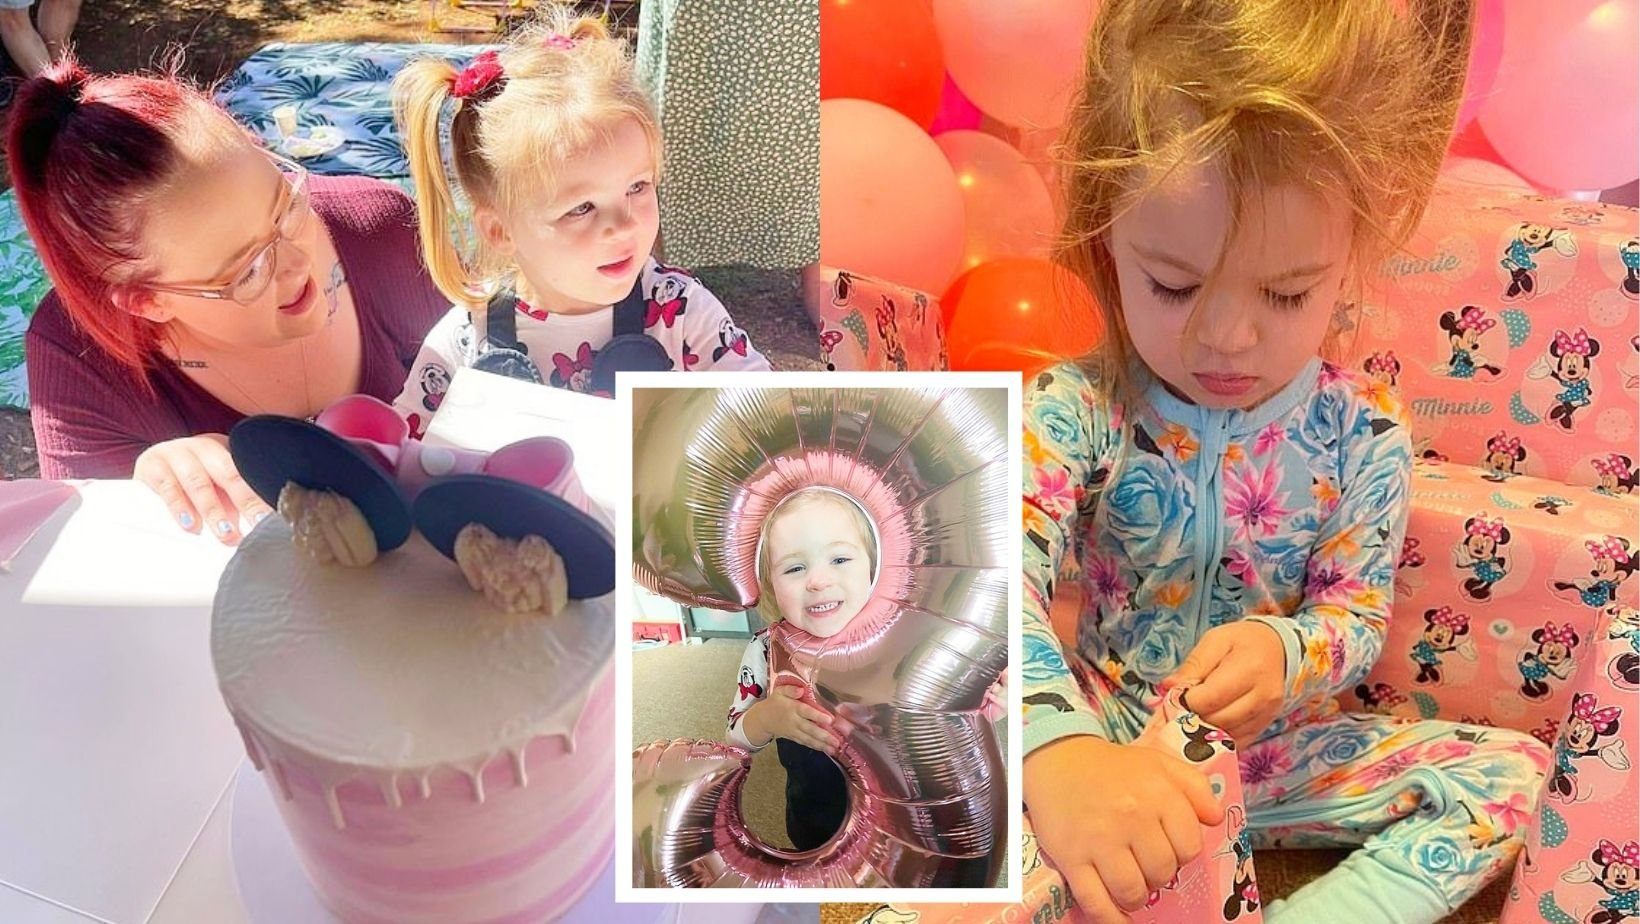 1 52.jpg?resize=412,232 - Mom Shares How Strangers Saved Her Daughter's 3rd Birthday Party After Invited Friends Cancelled The Last Minute